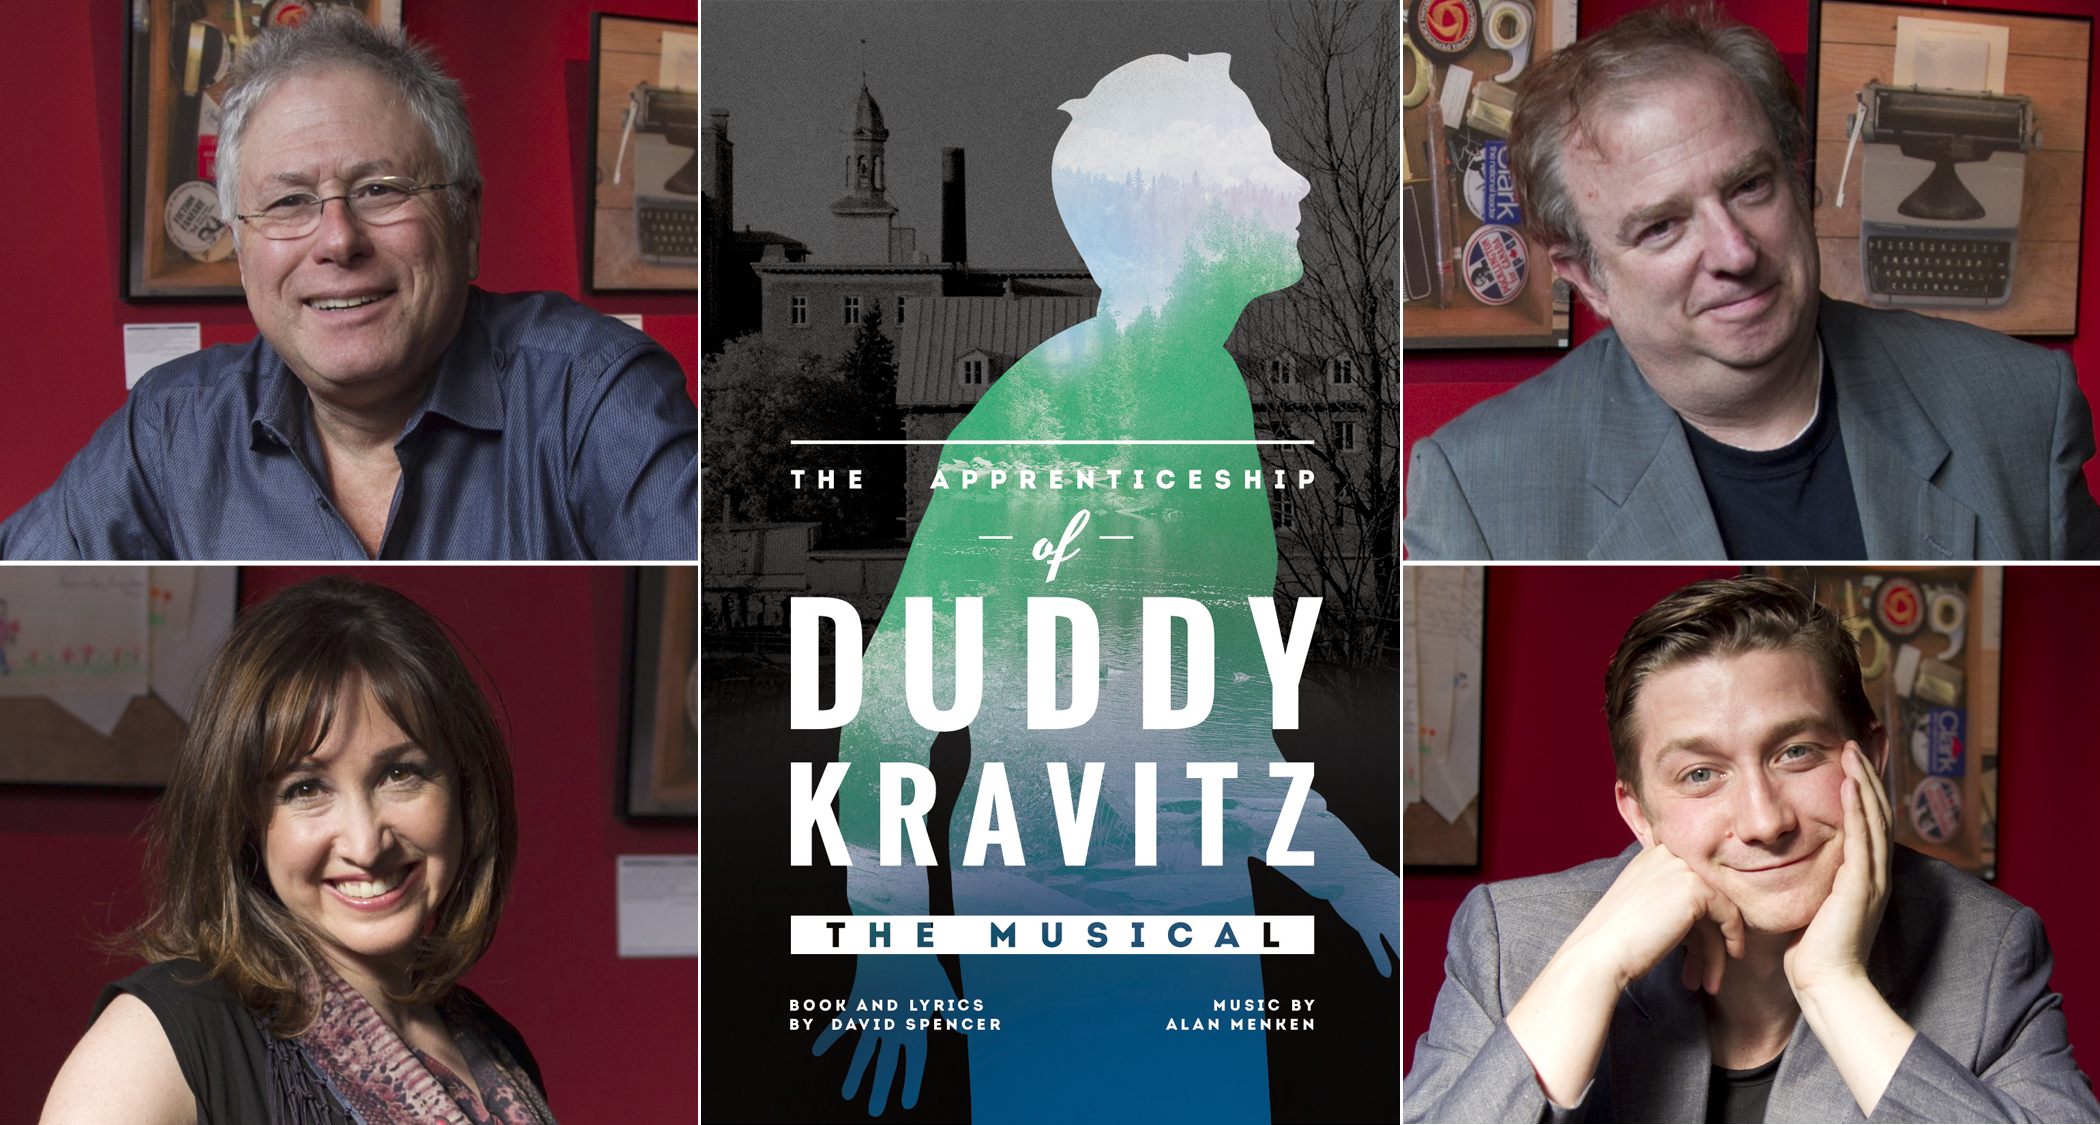 The insecurities of duddy in the novel the apprenticeship of duddy kravitz